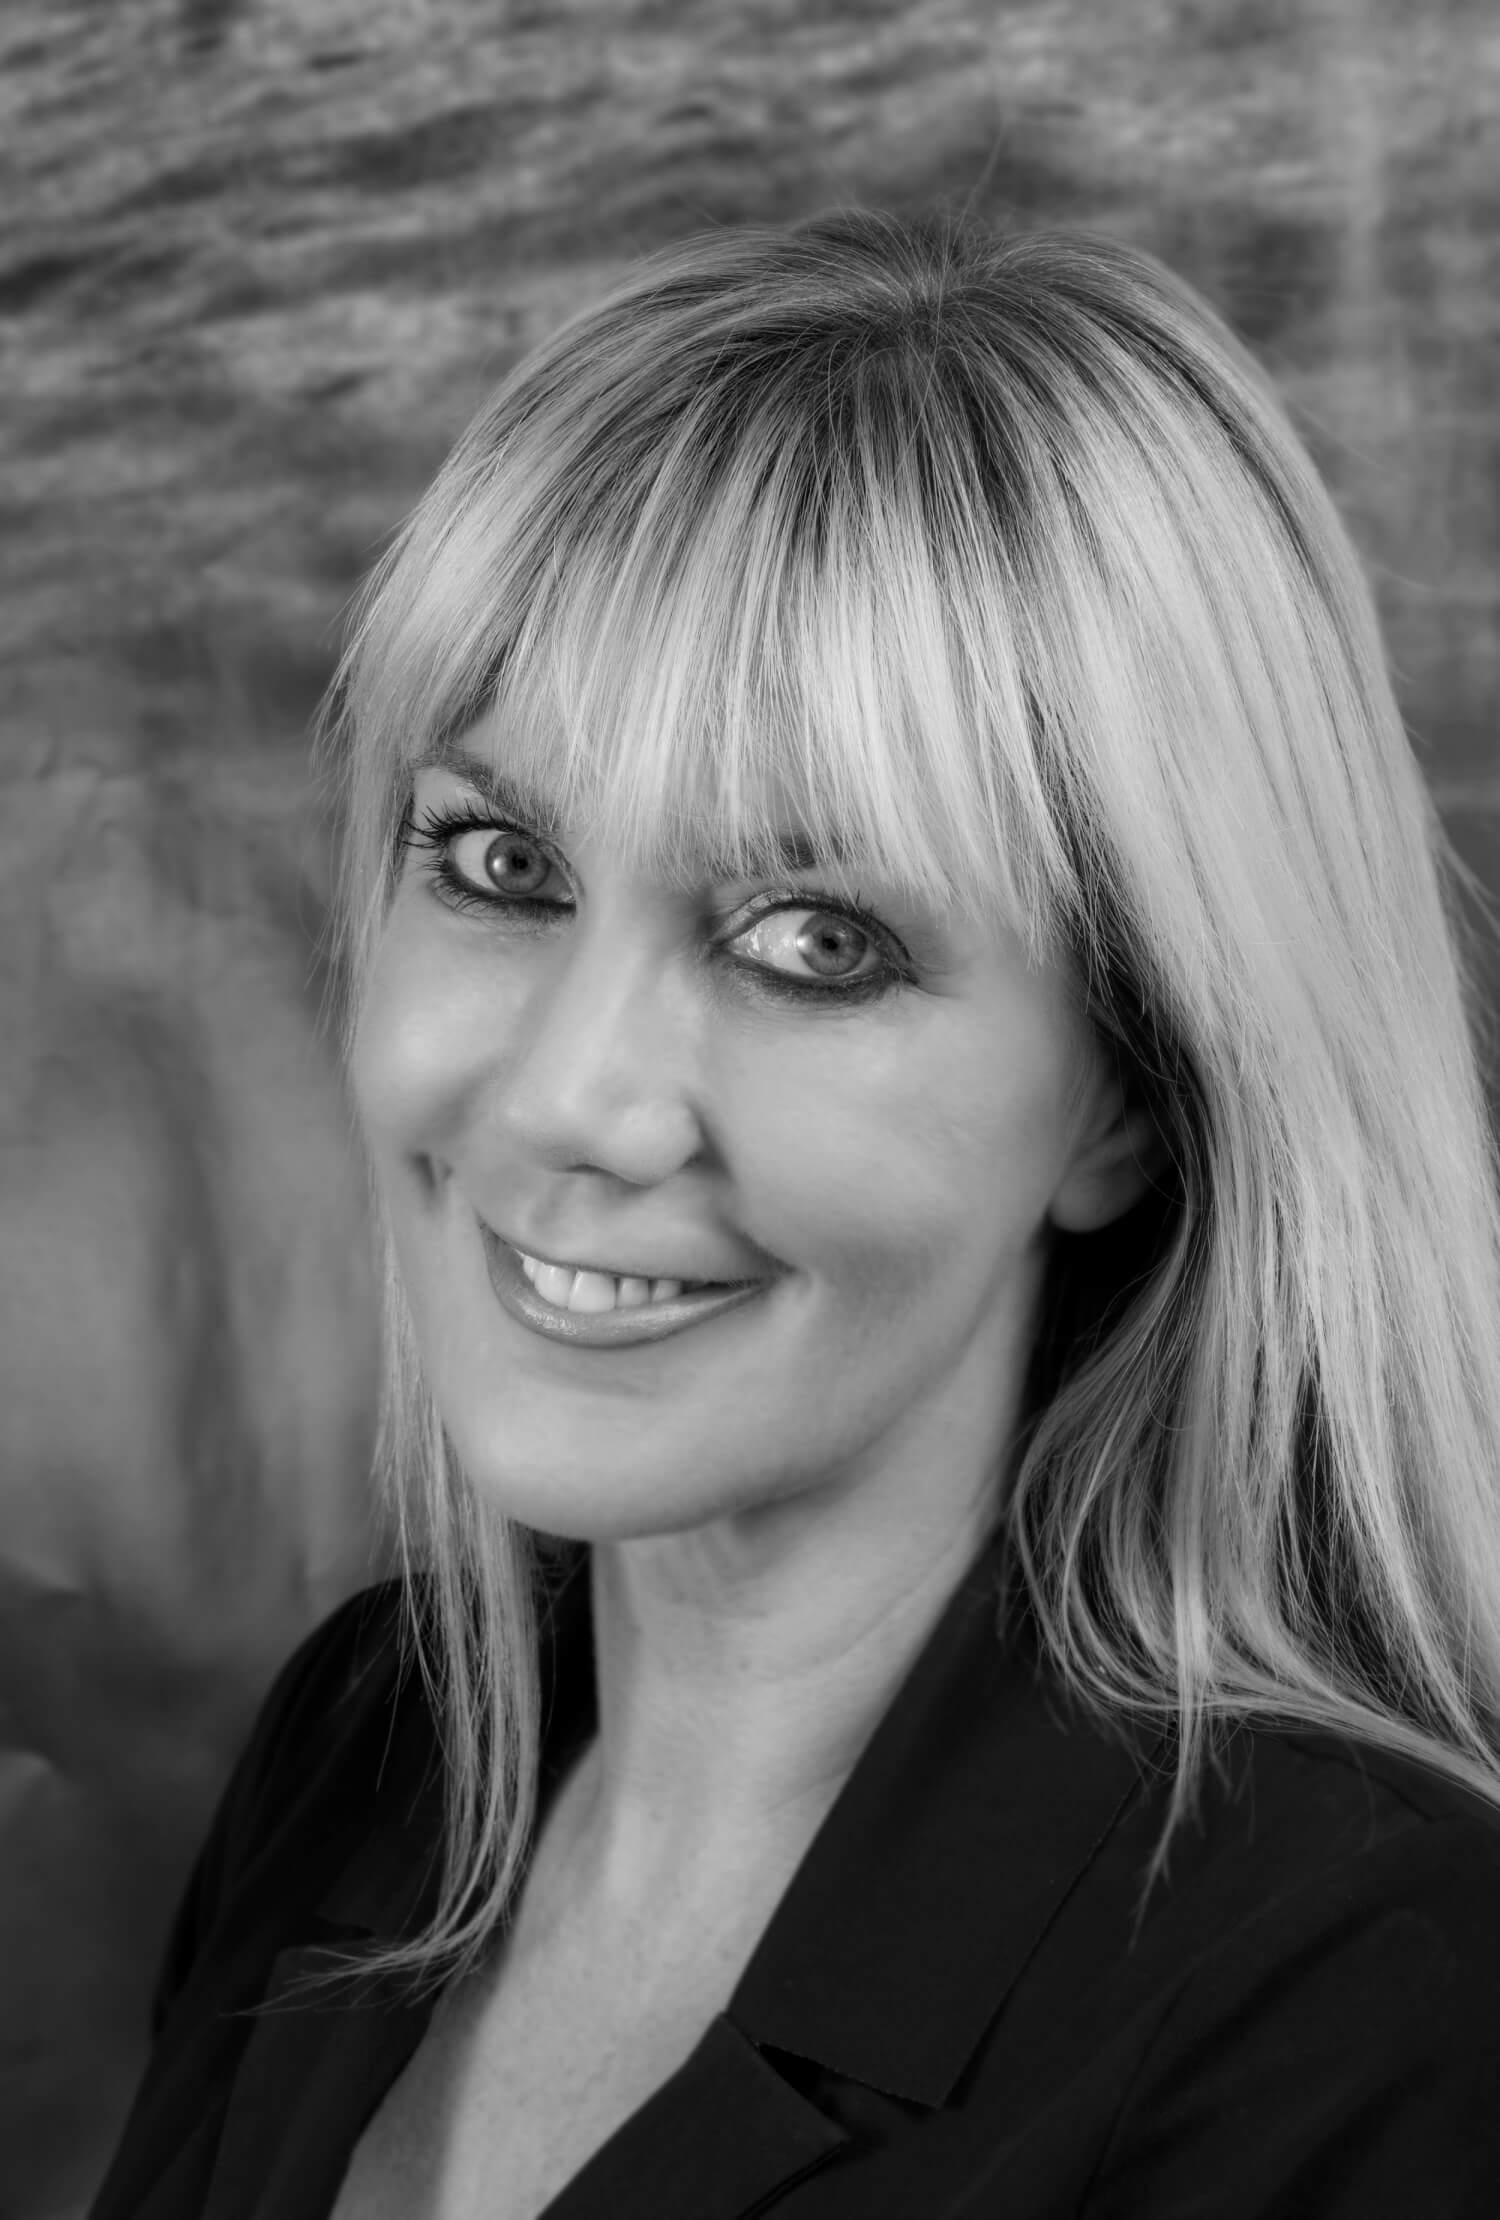 Crystal Clear founder Sharon Hilditch MBE headshot